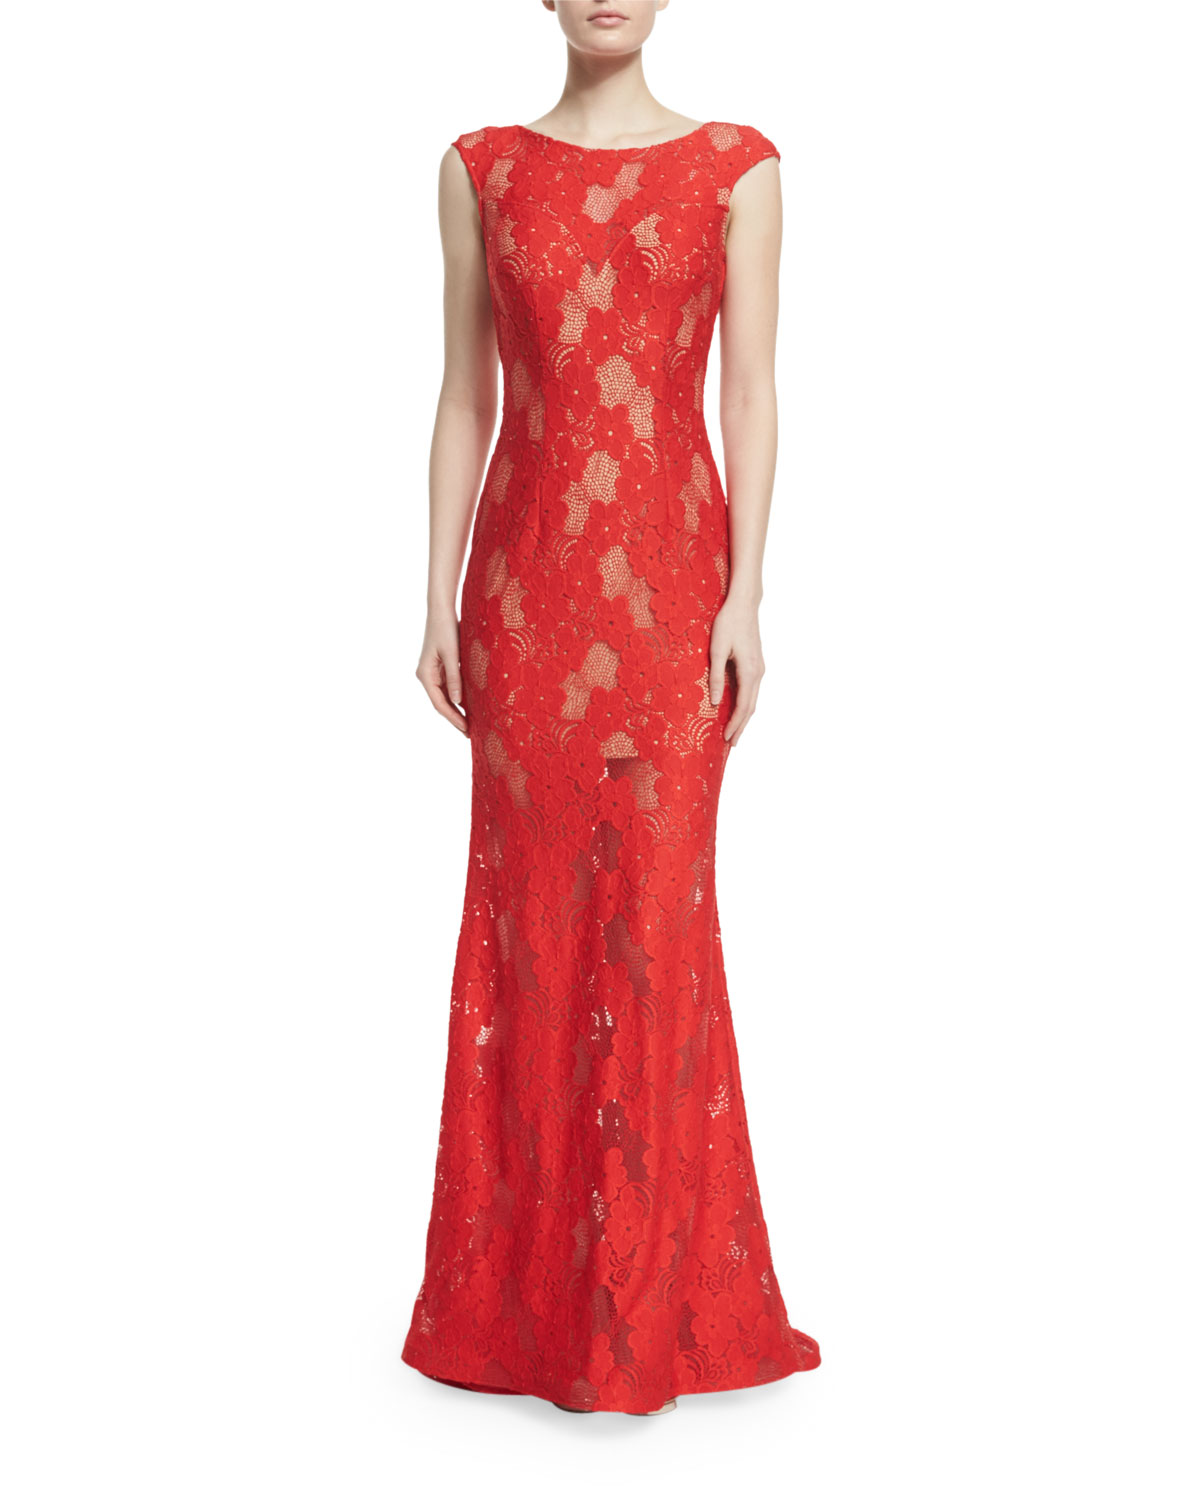 Cap-Sleeve Lace Column Gown, Size: 0, Red/Nude - Jovani